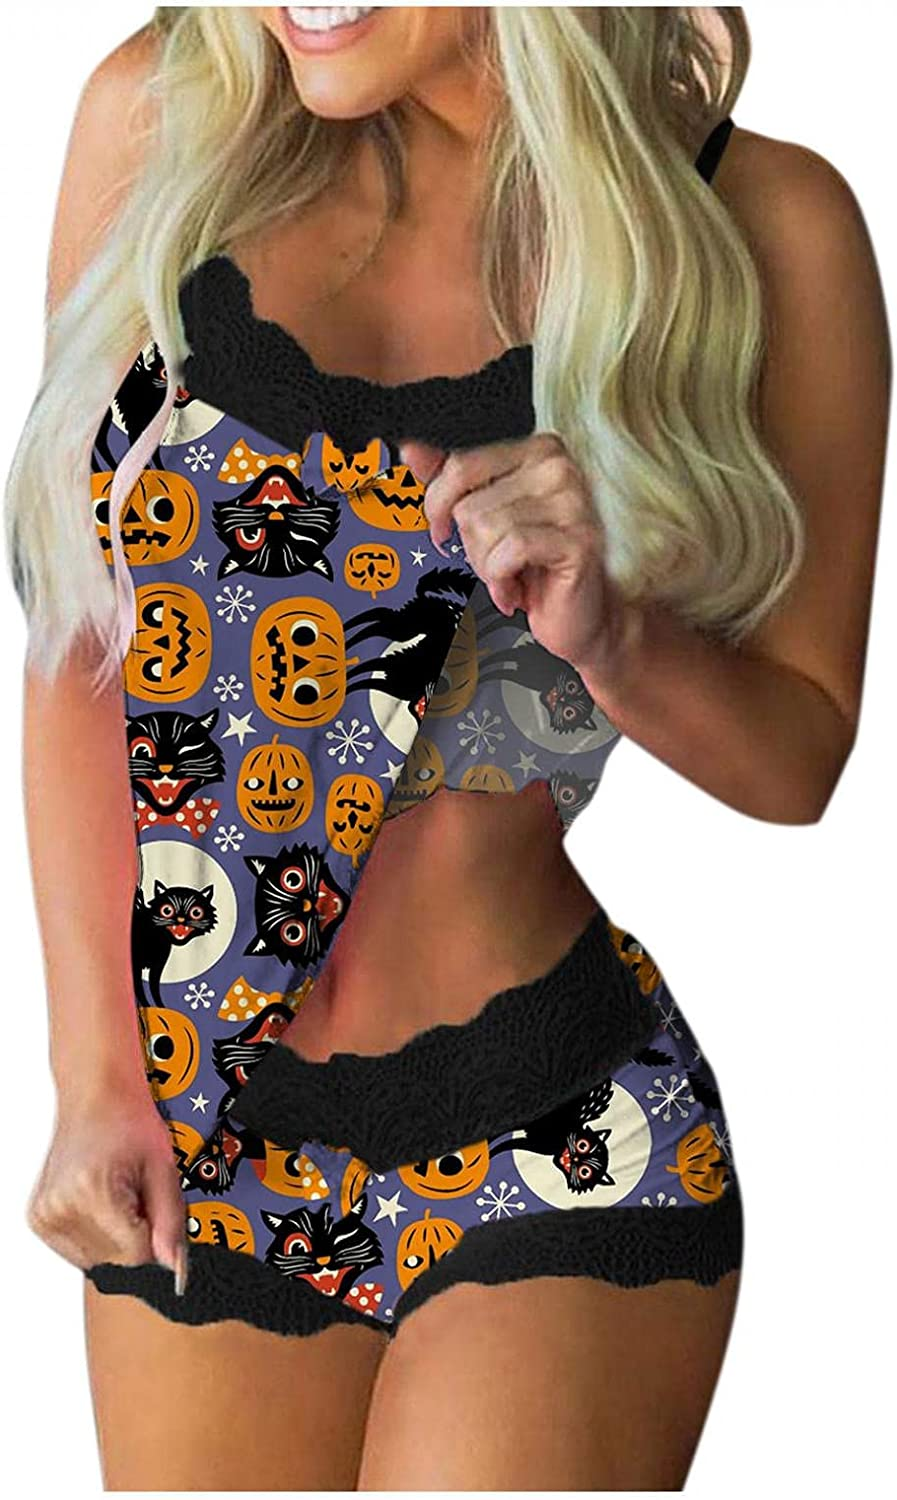 Pajamas for Women,Women Cute Halloween Printed Lingerie Sets Sexy Teddy Babydoll Underwear Pajamas Casual Lingerie Sets